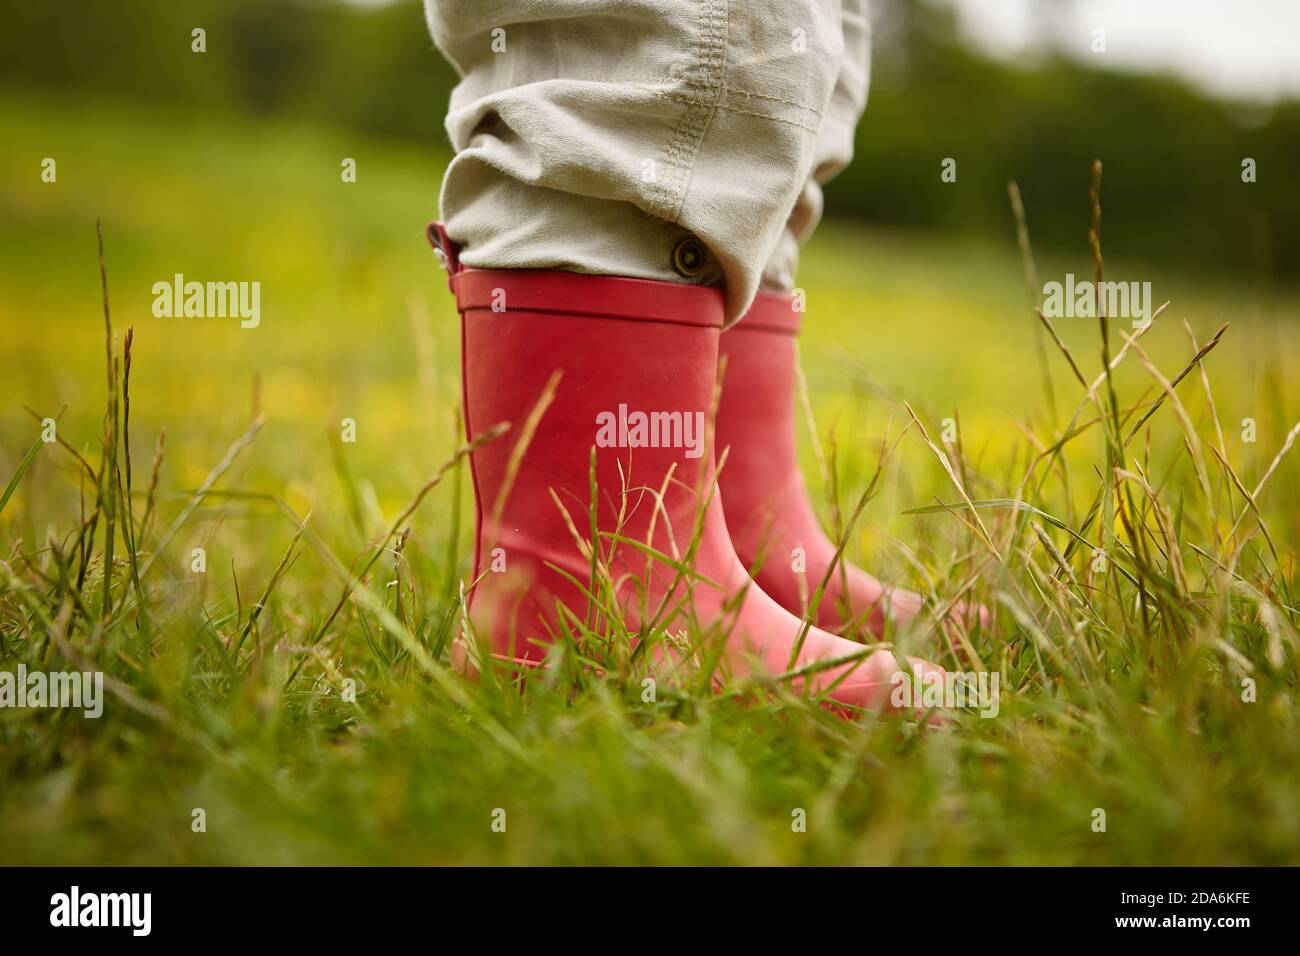 Red Welly boots Stock Photo